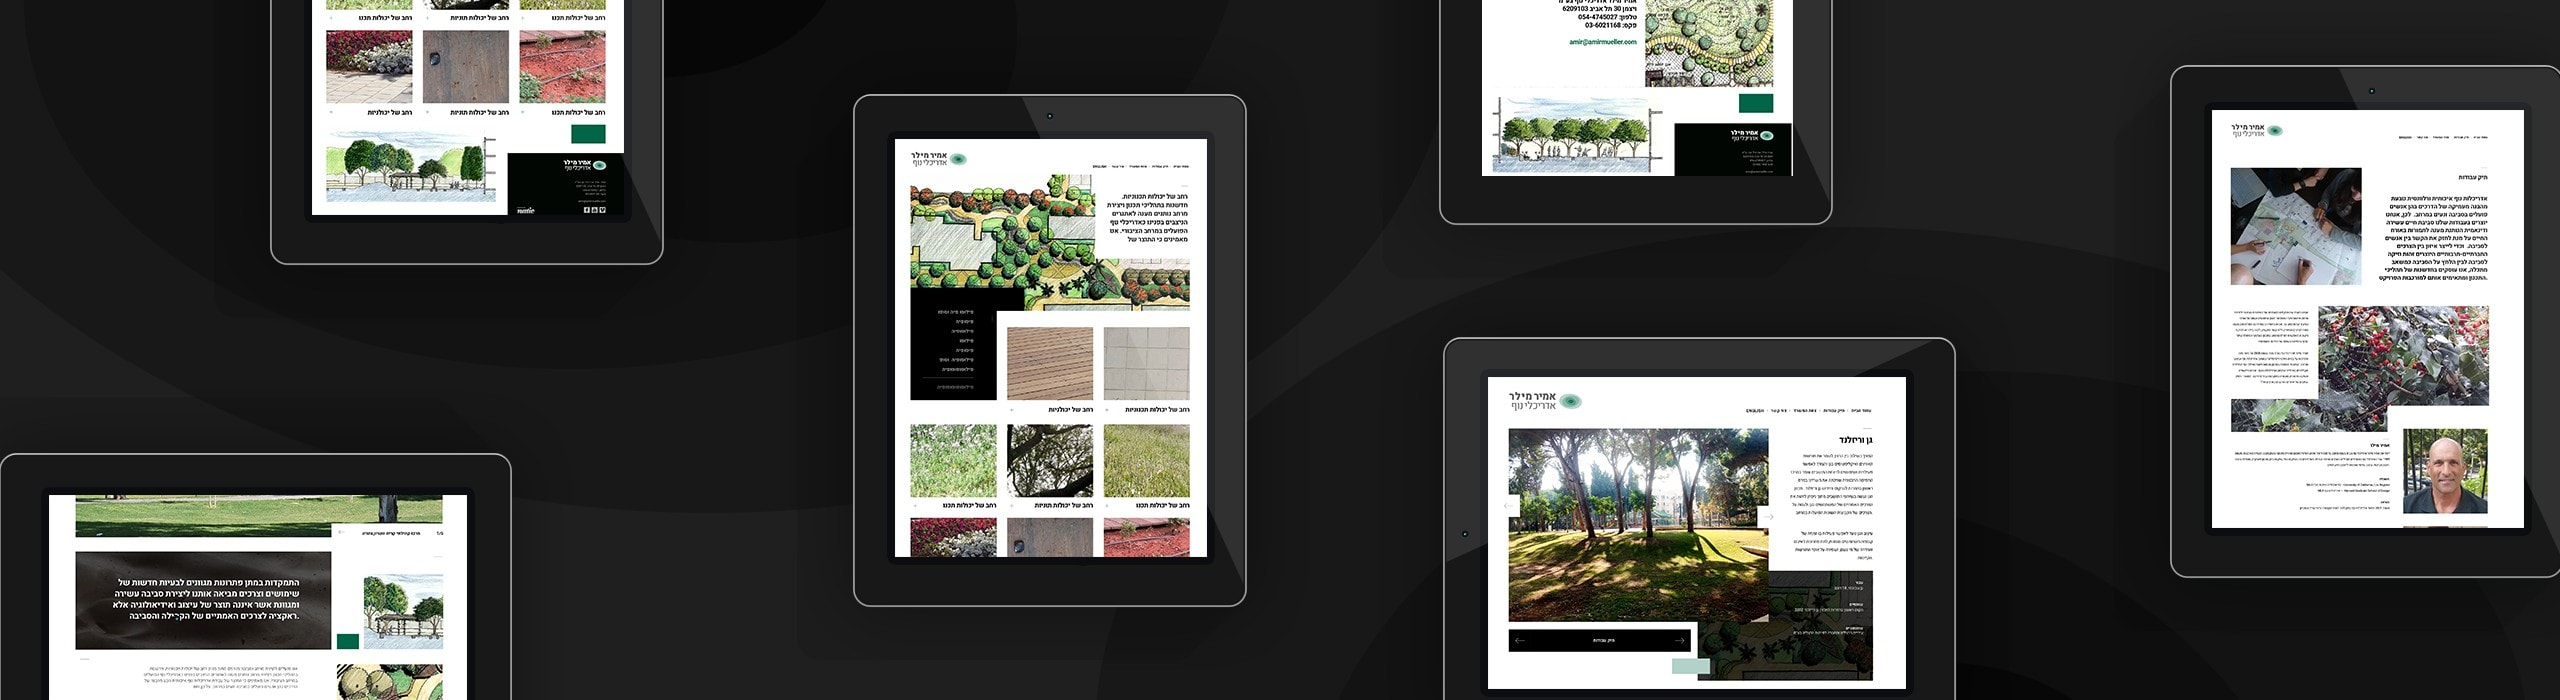 Amir Mueller - natie-amir-mueller-ipad-website - Natie Branding Agency